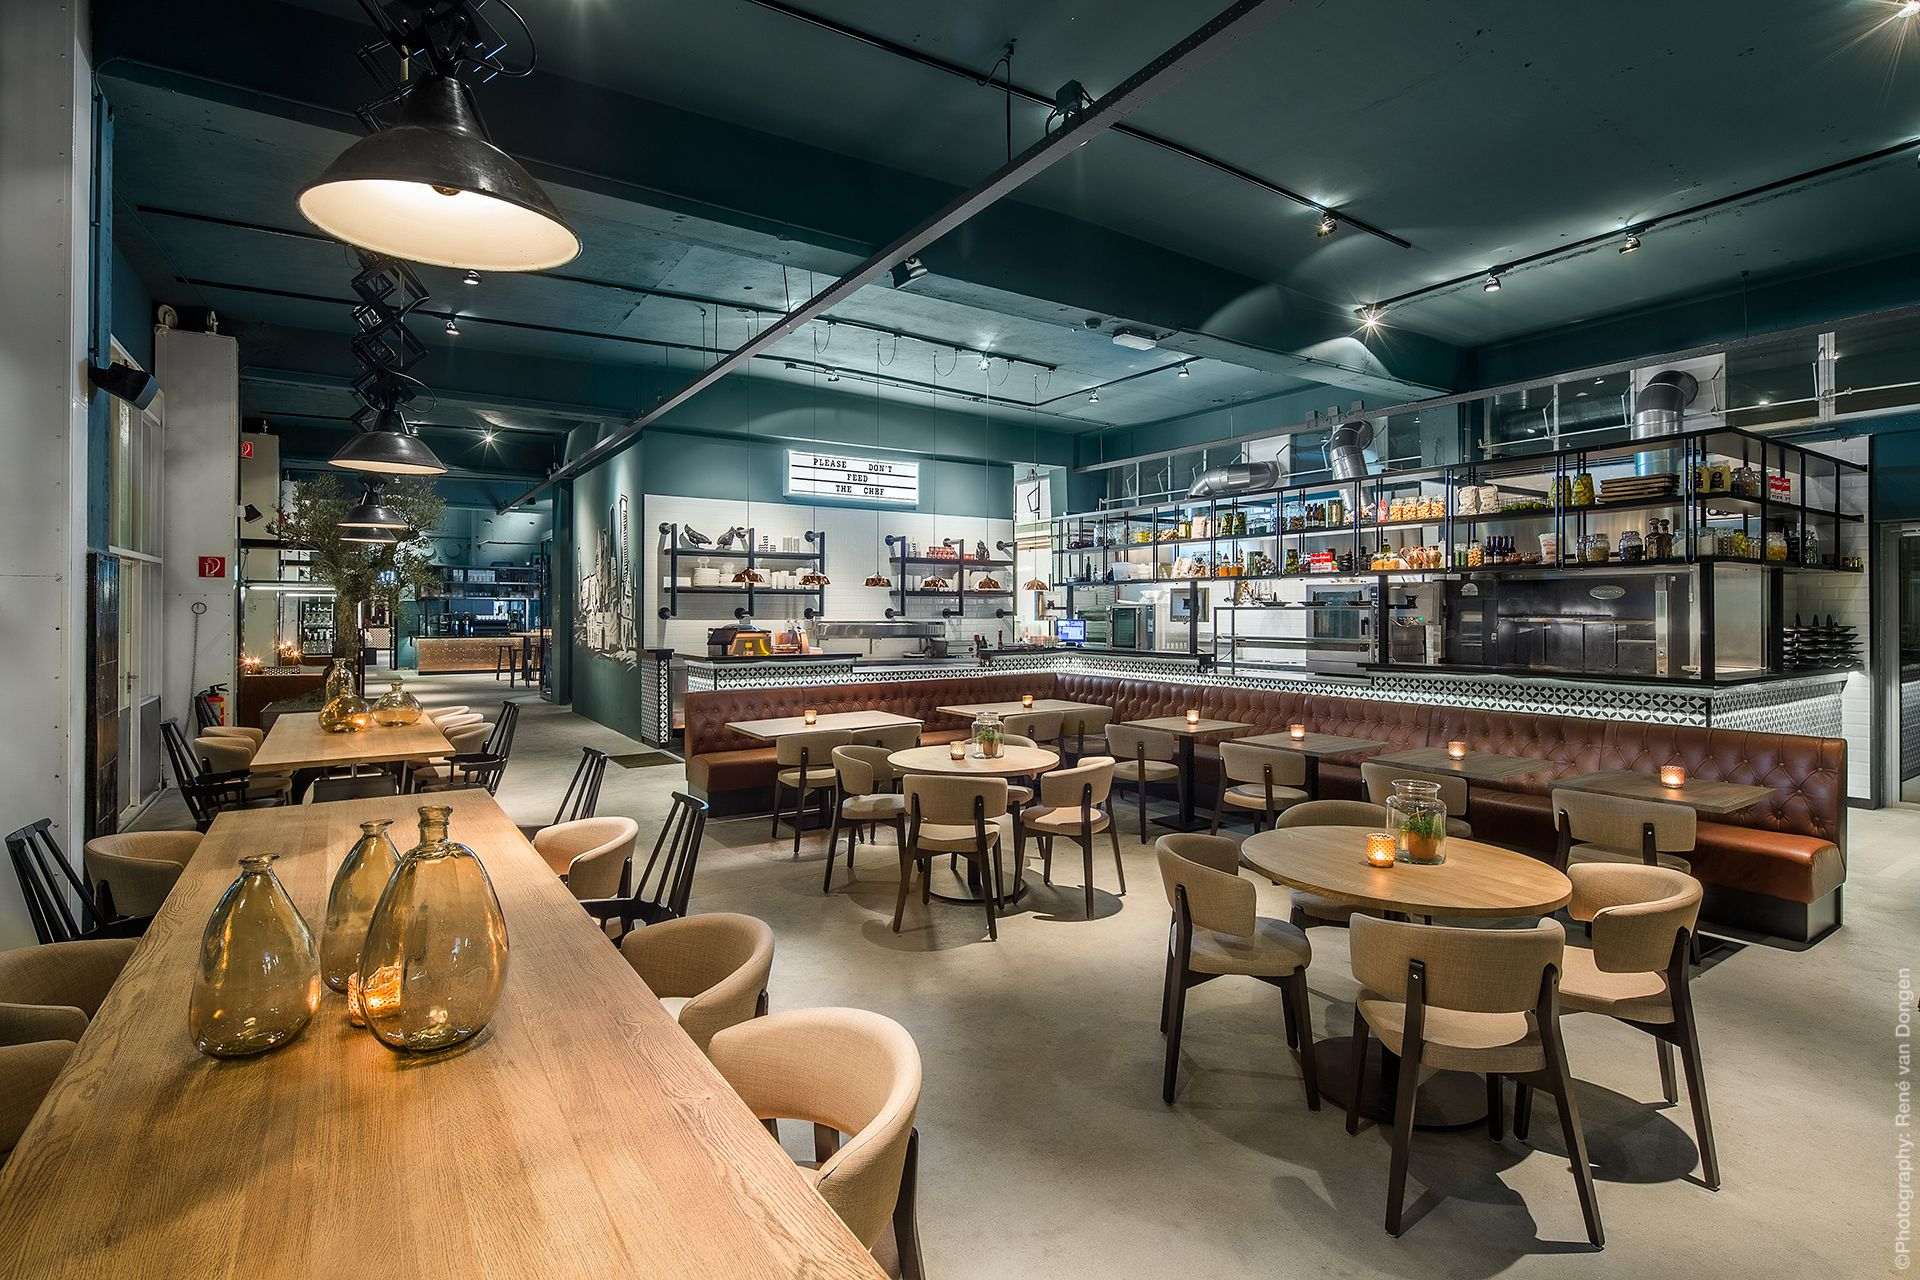 Explore Interior Photography Restaurant Design And More MaMa Kelly The Hague